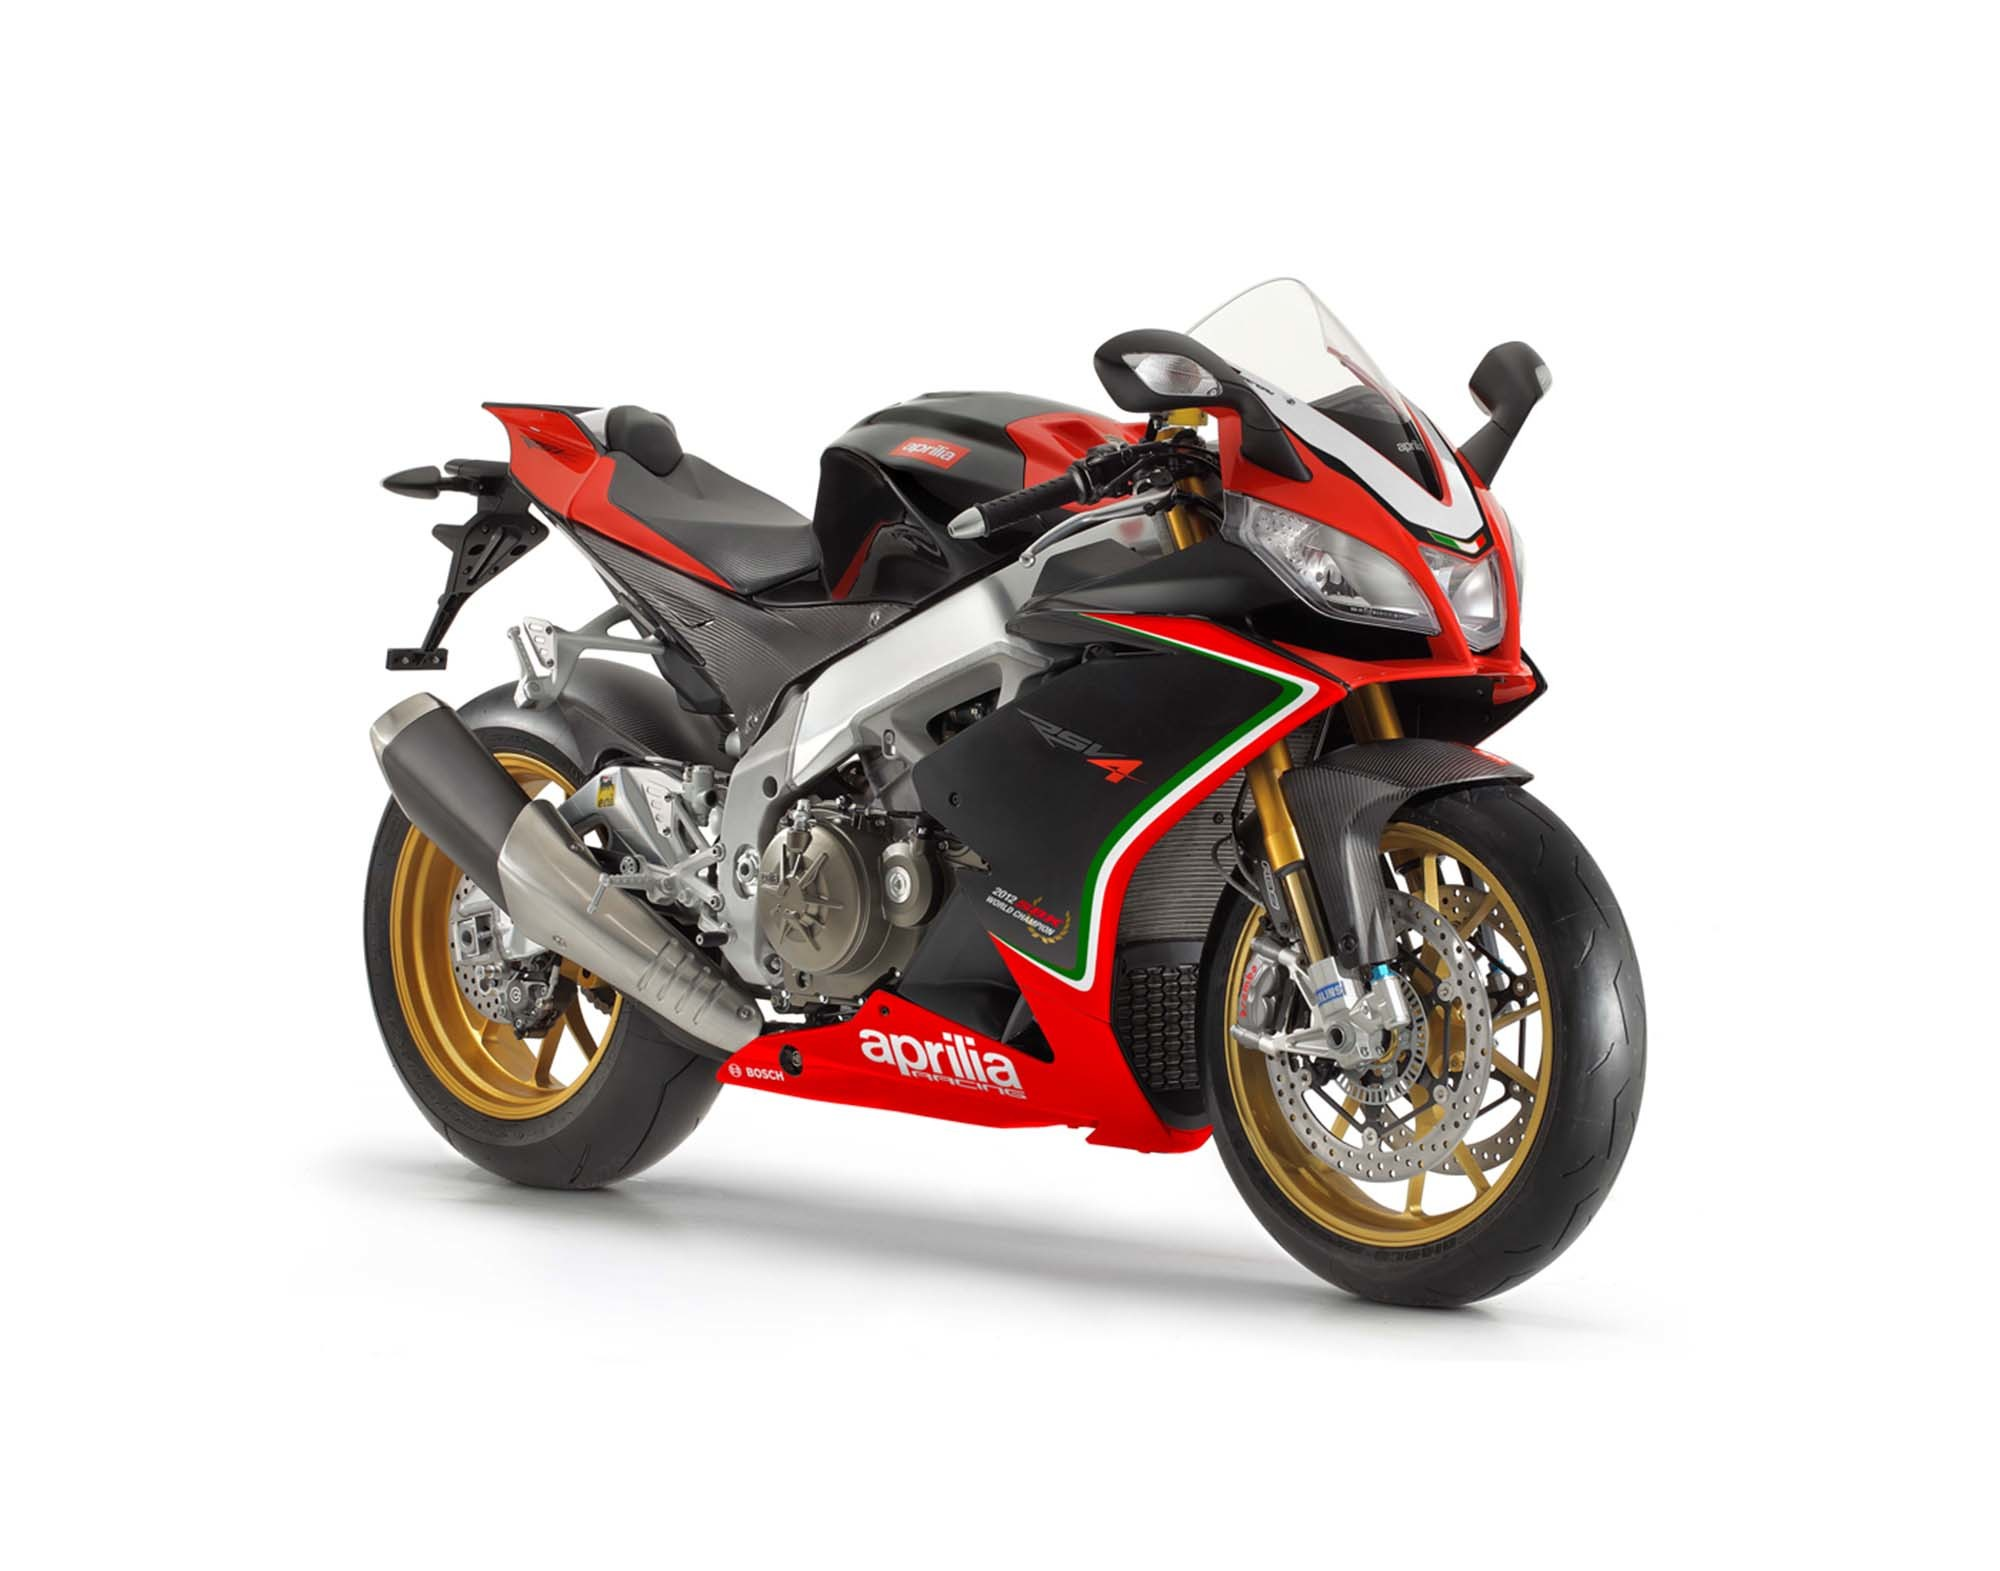 Auto Expo 2016: Aprilia Displays RSV4, RS-GP alongside the SR 150 - Bike News - Maxabout Forum